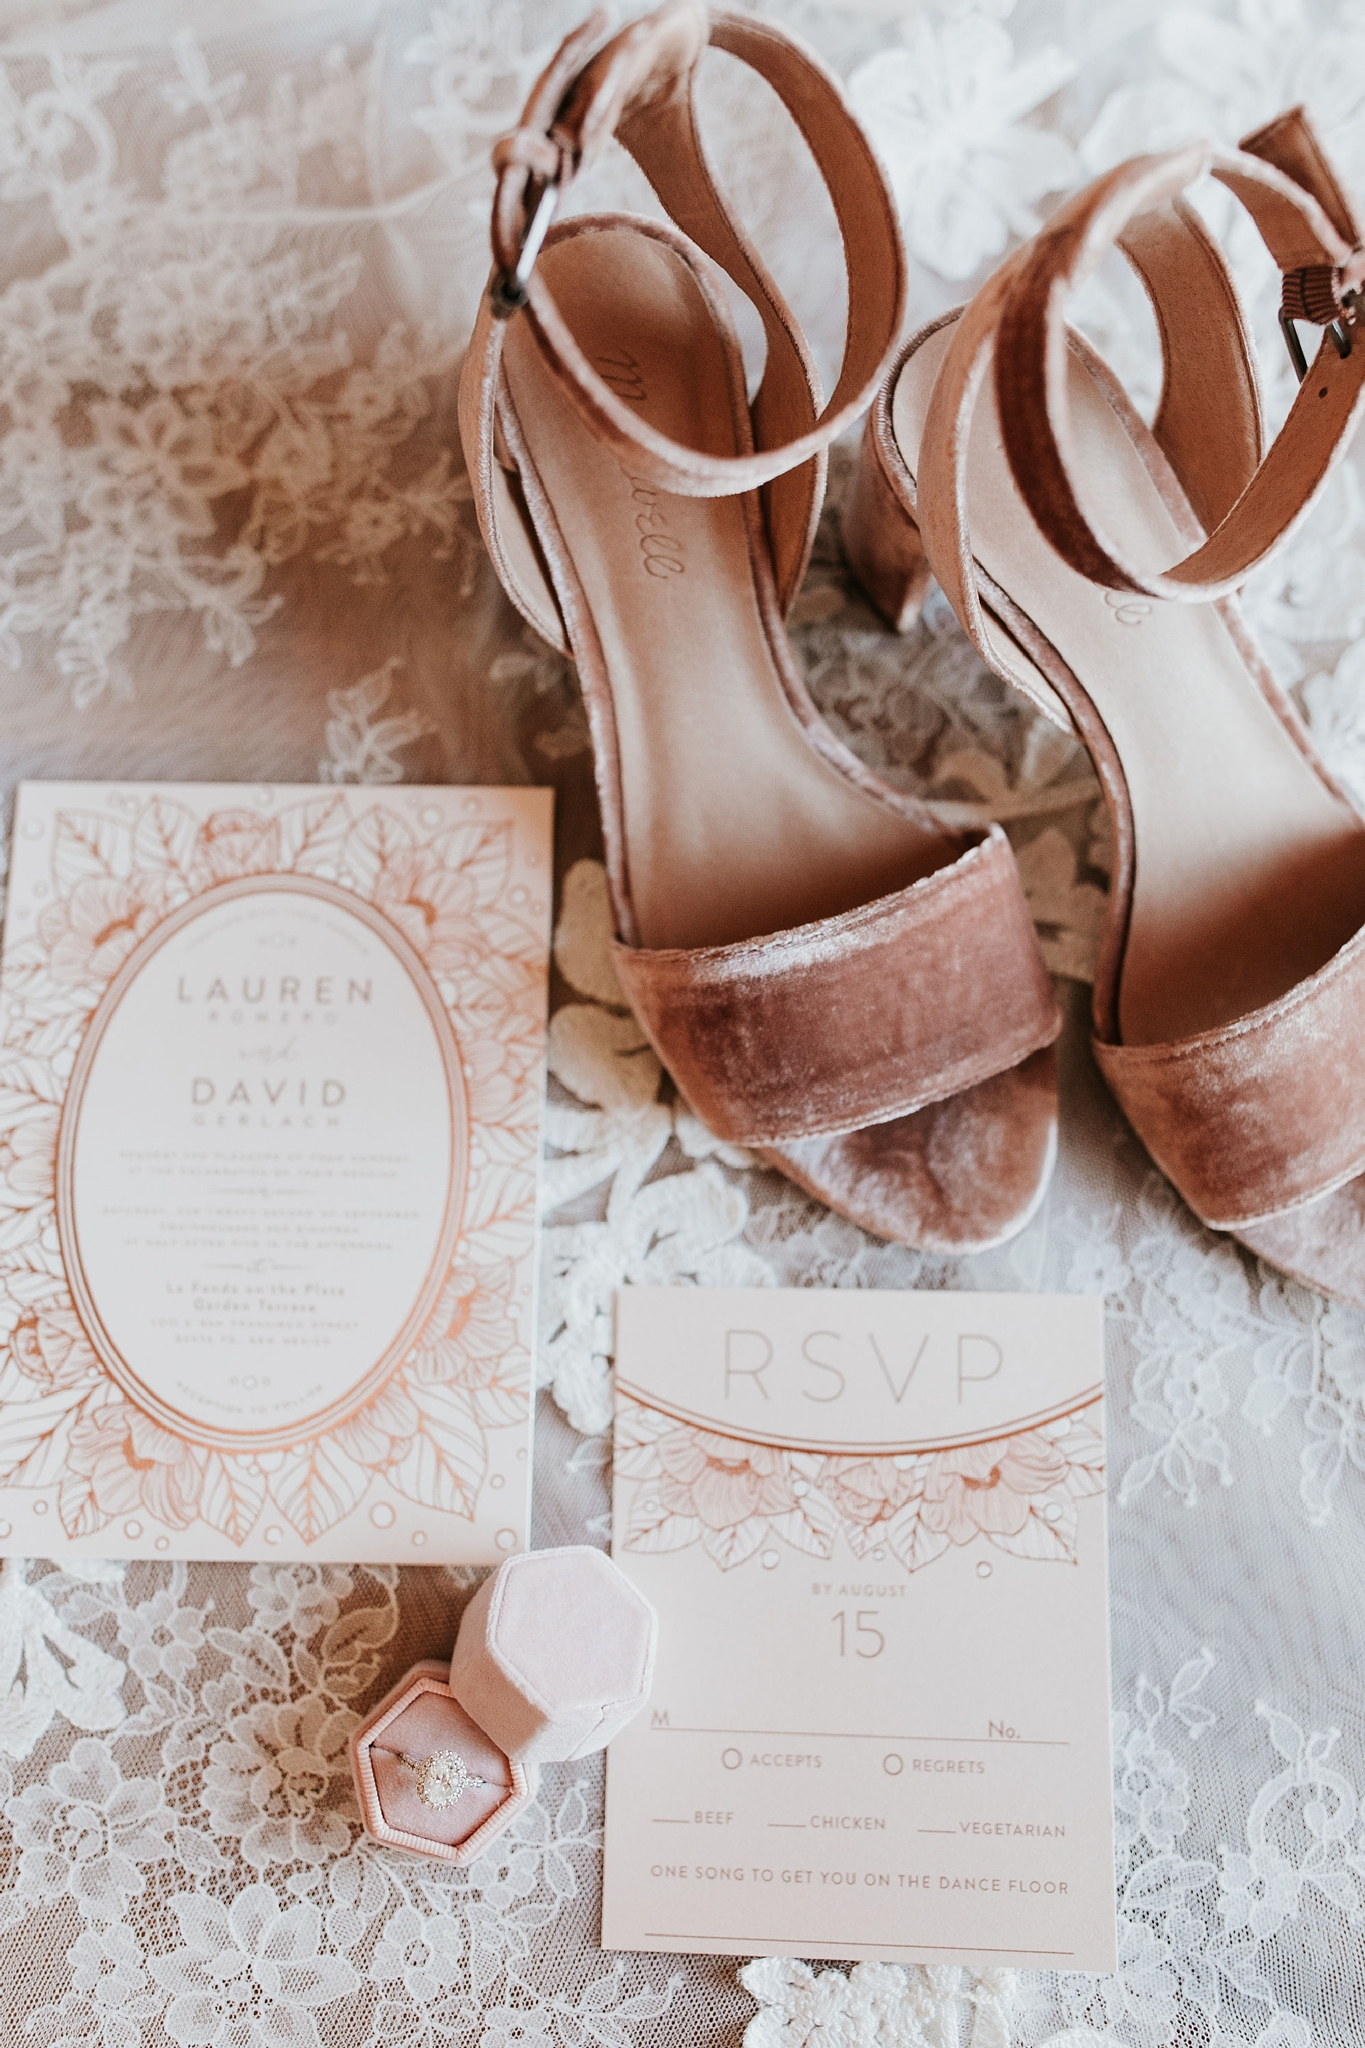 Alicia+lucia+photography+-+albuquerque+wedding+photographer+-+santa+fe+wedding+photography+-+new+mexico+wedding+photographer+-+new+mexico+wedding+-+new+mexico+wedding+-+colorado+wedding+-+bridal+shoes+-+bridal+inspo_0051.jpg